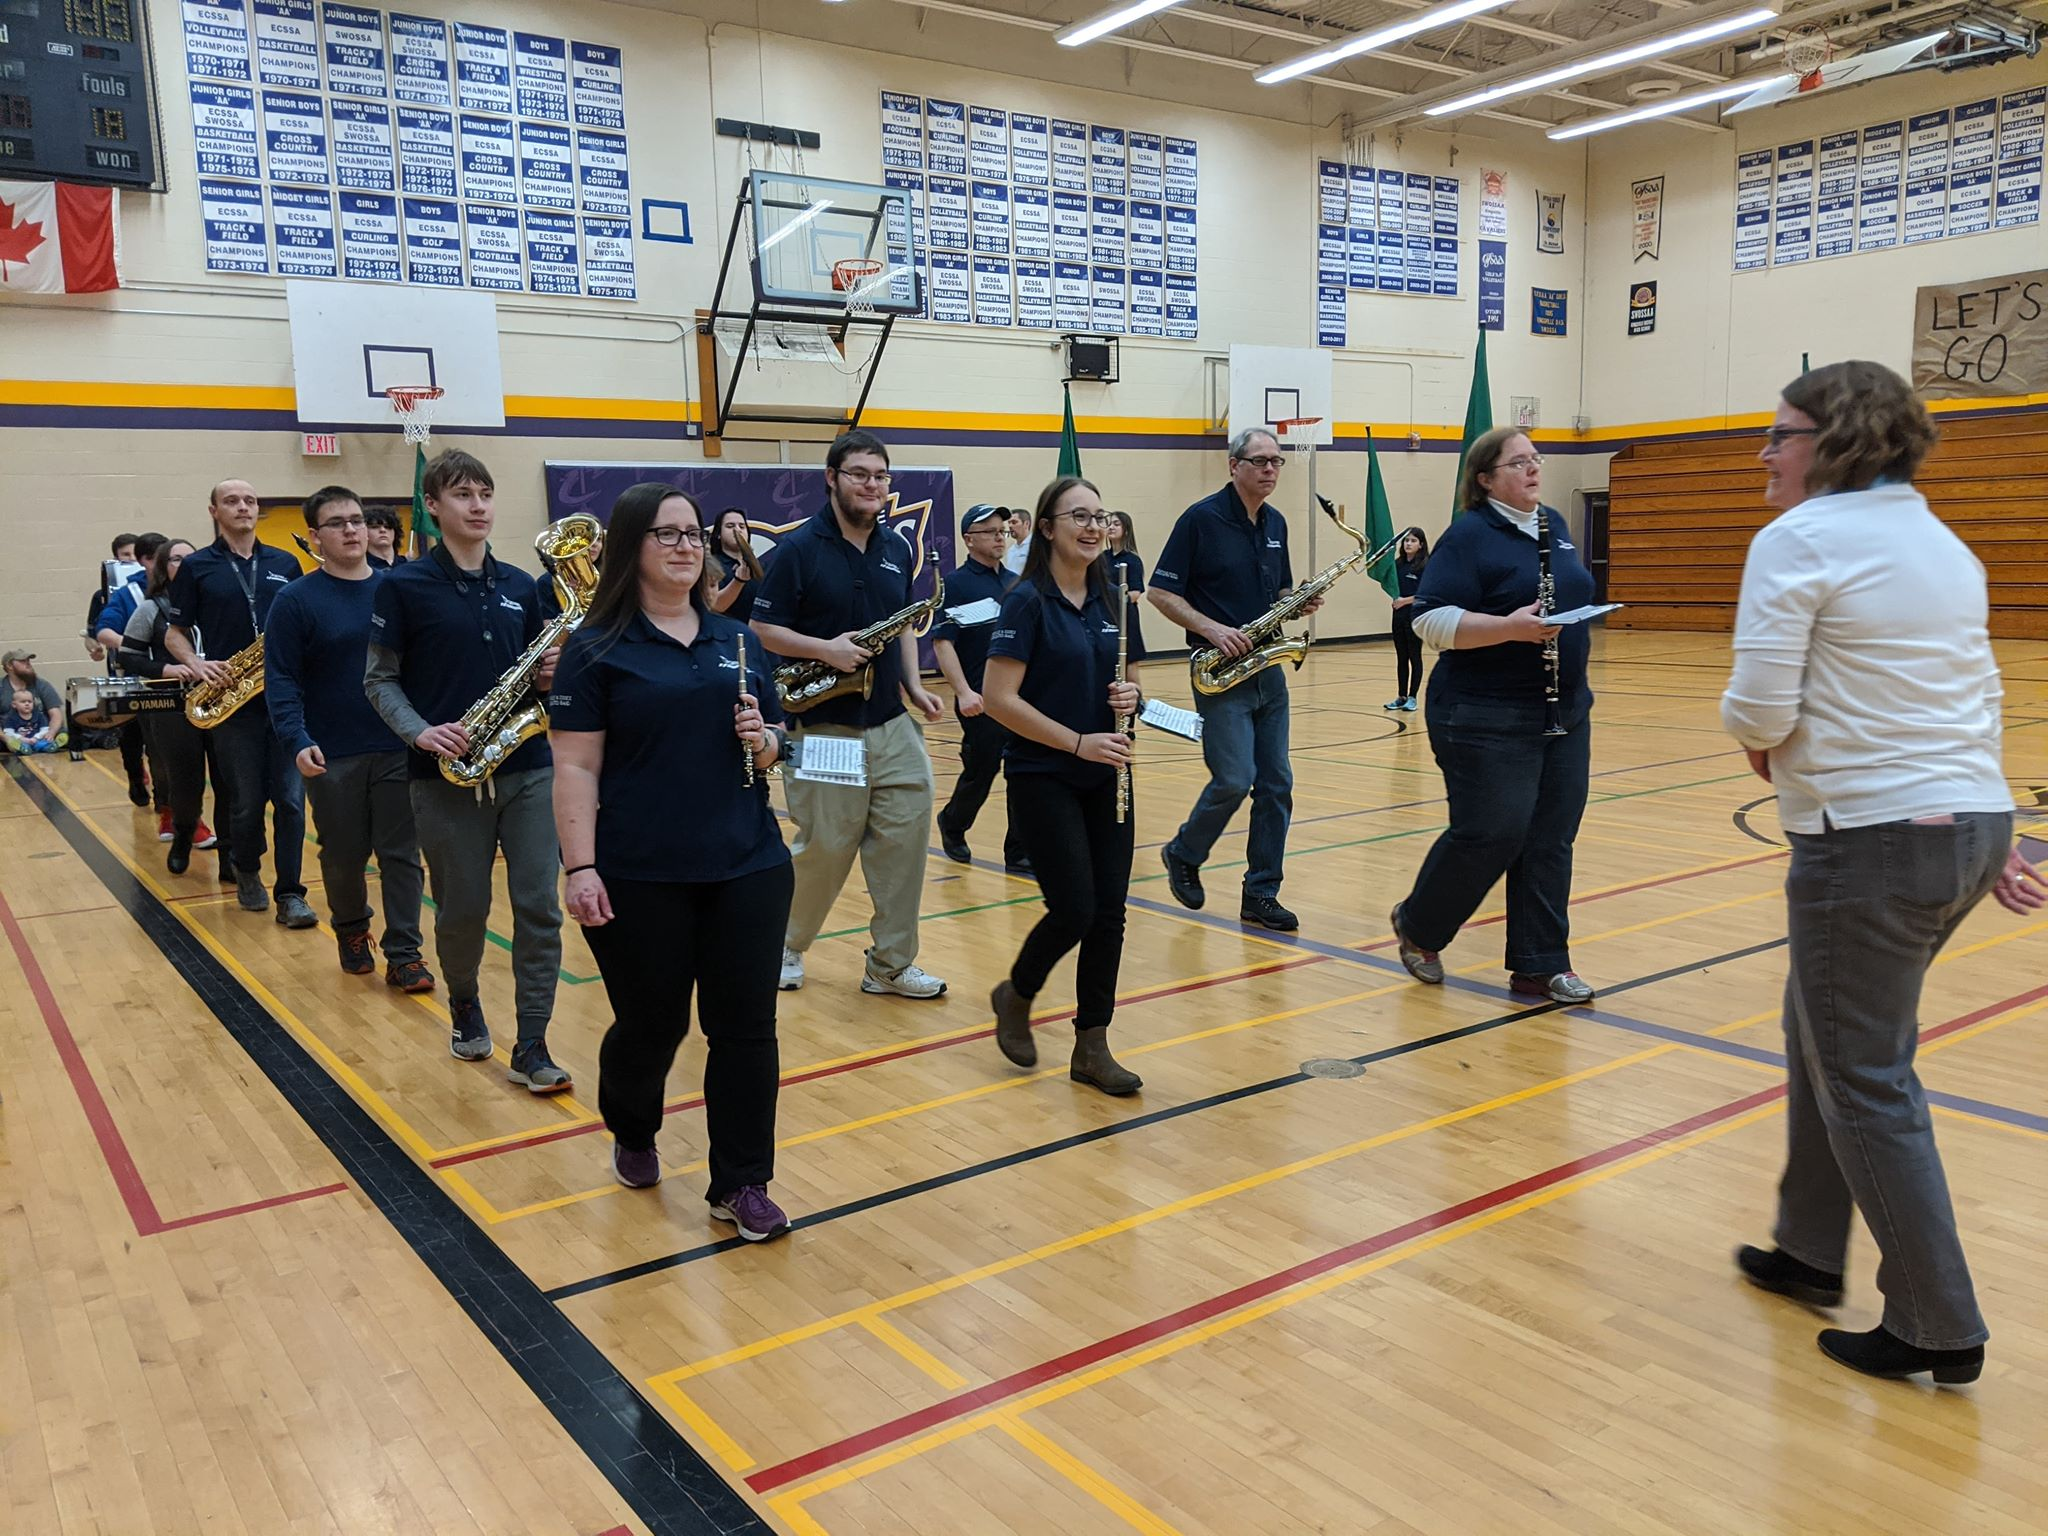 marching band practicing marching through a gymnasium